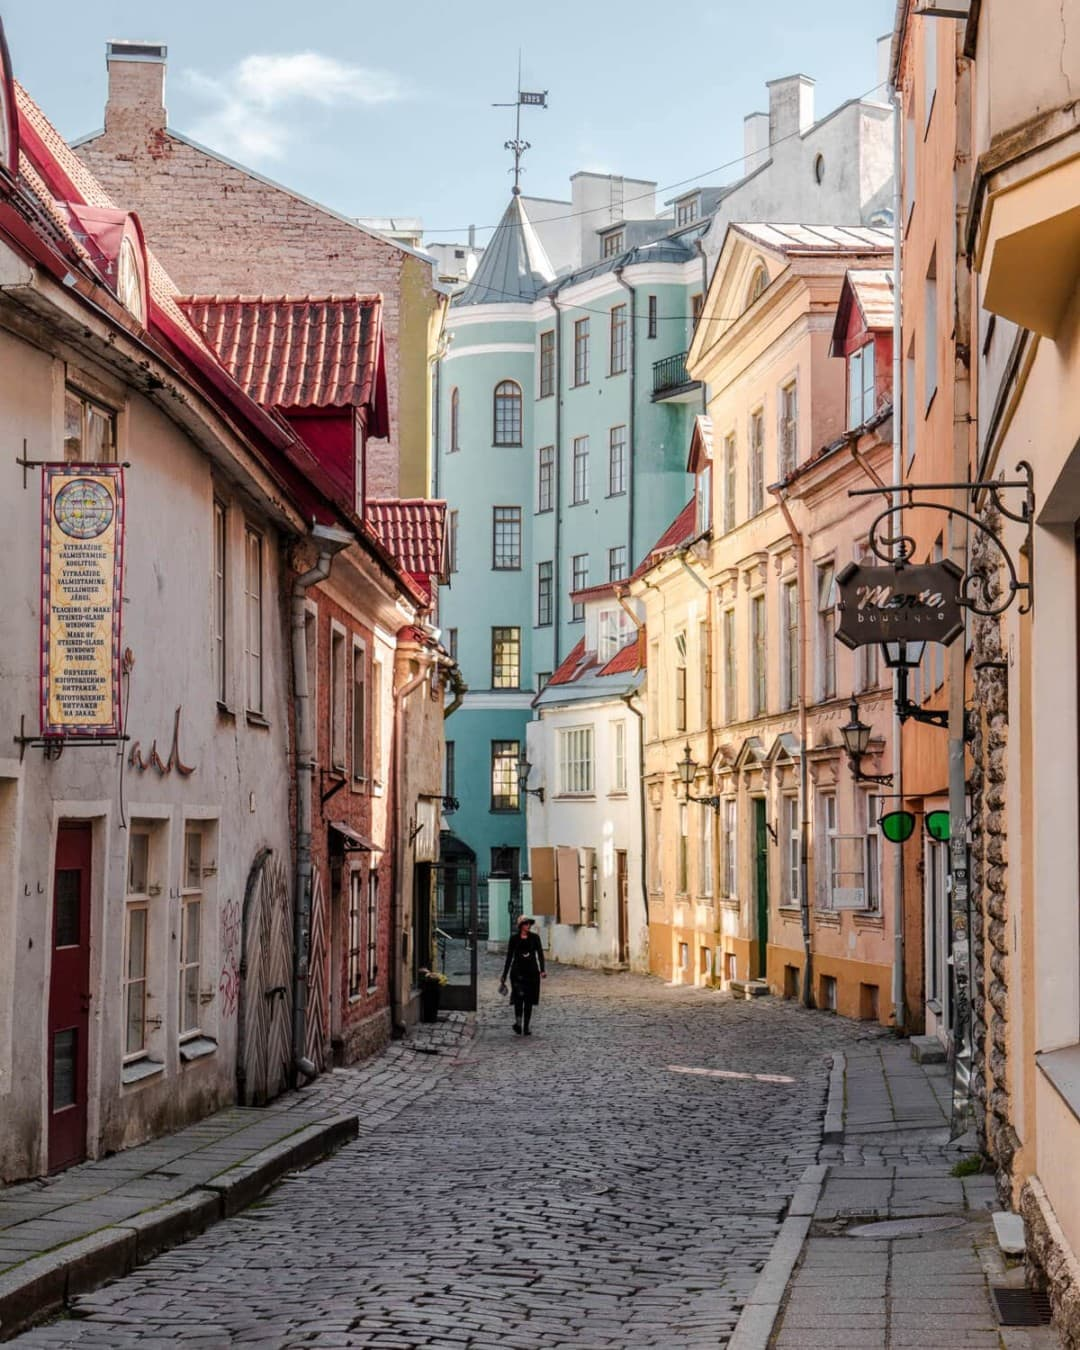 How to do a Day trip to Tallinn, Estonia from Helsinki